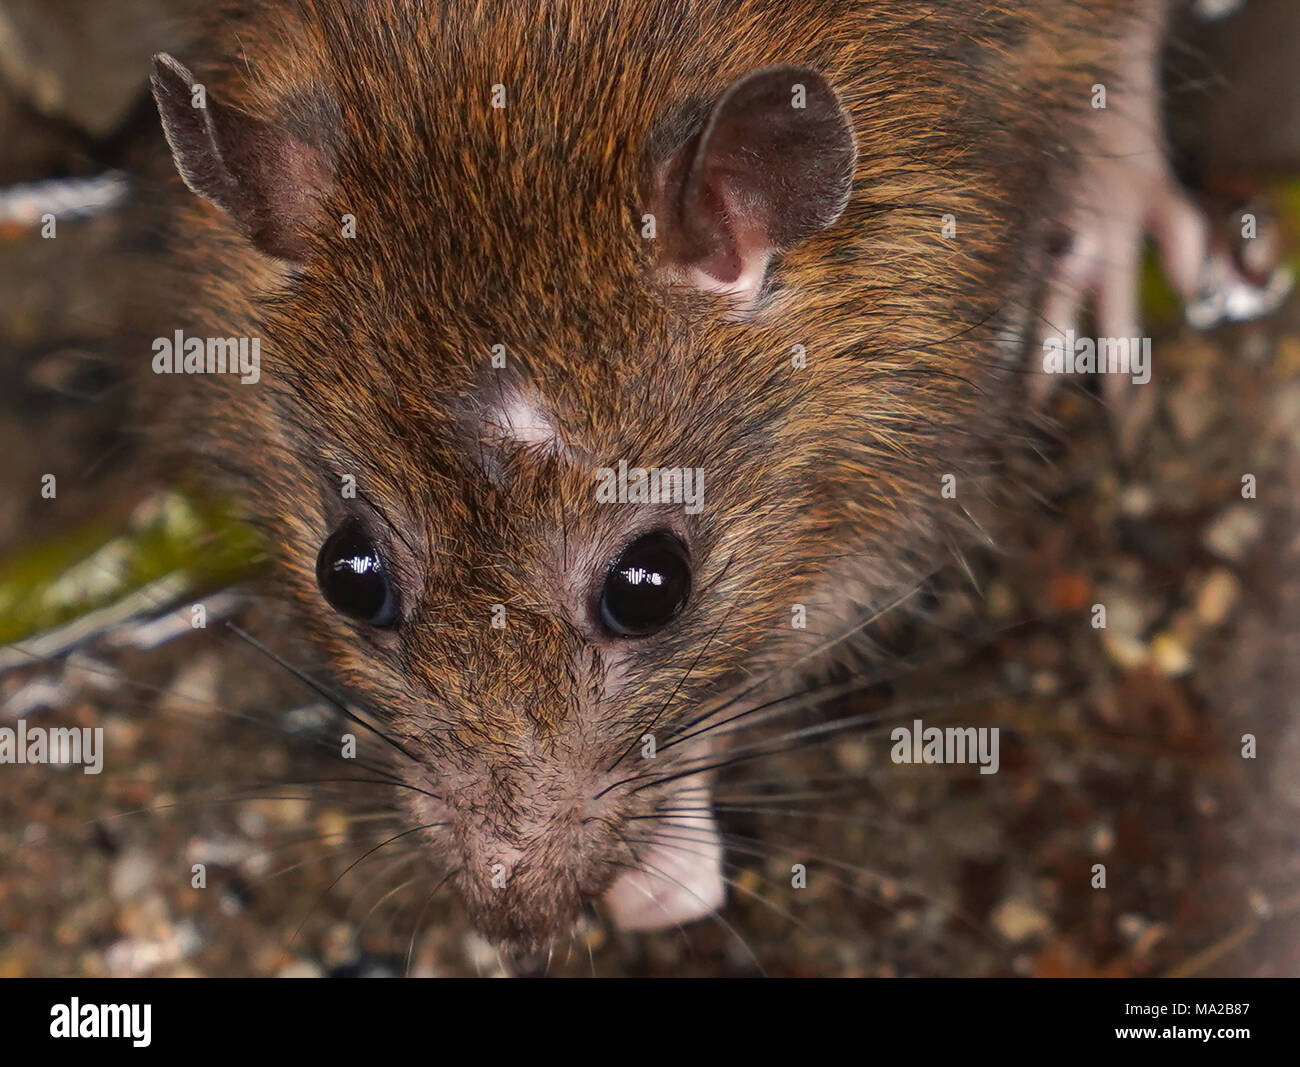 Closeup of rat on a sewer could bee seen from drain grate - Stock Image